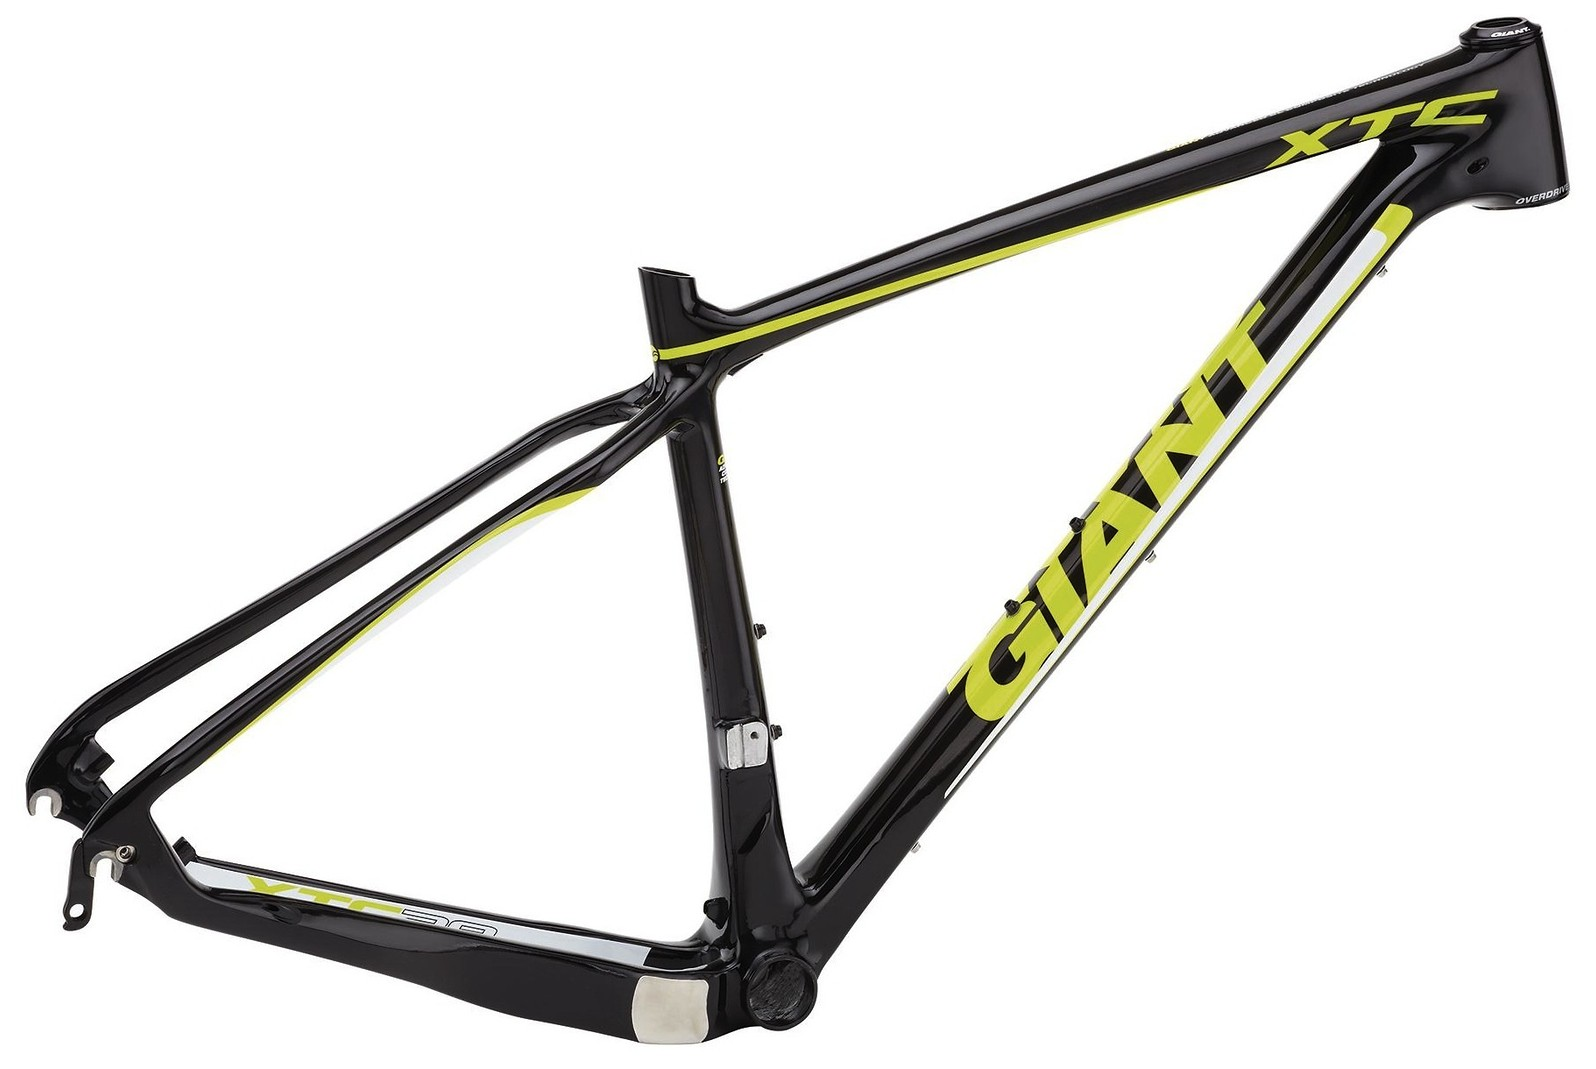 Giant Xtc Advanced Sl 29er 2014 Frame Reviews